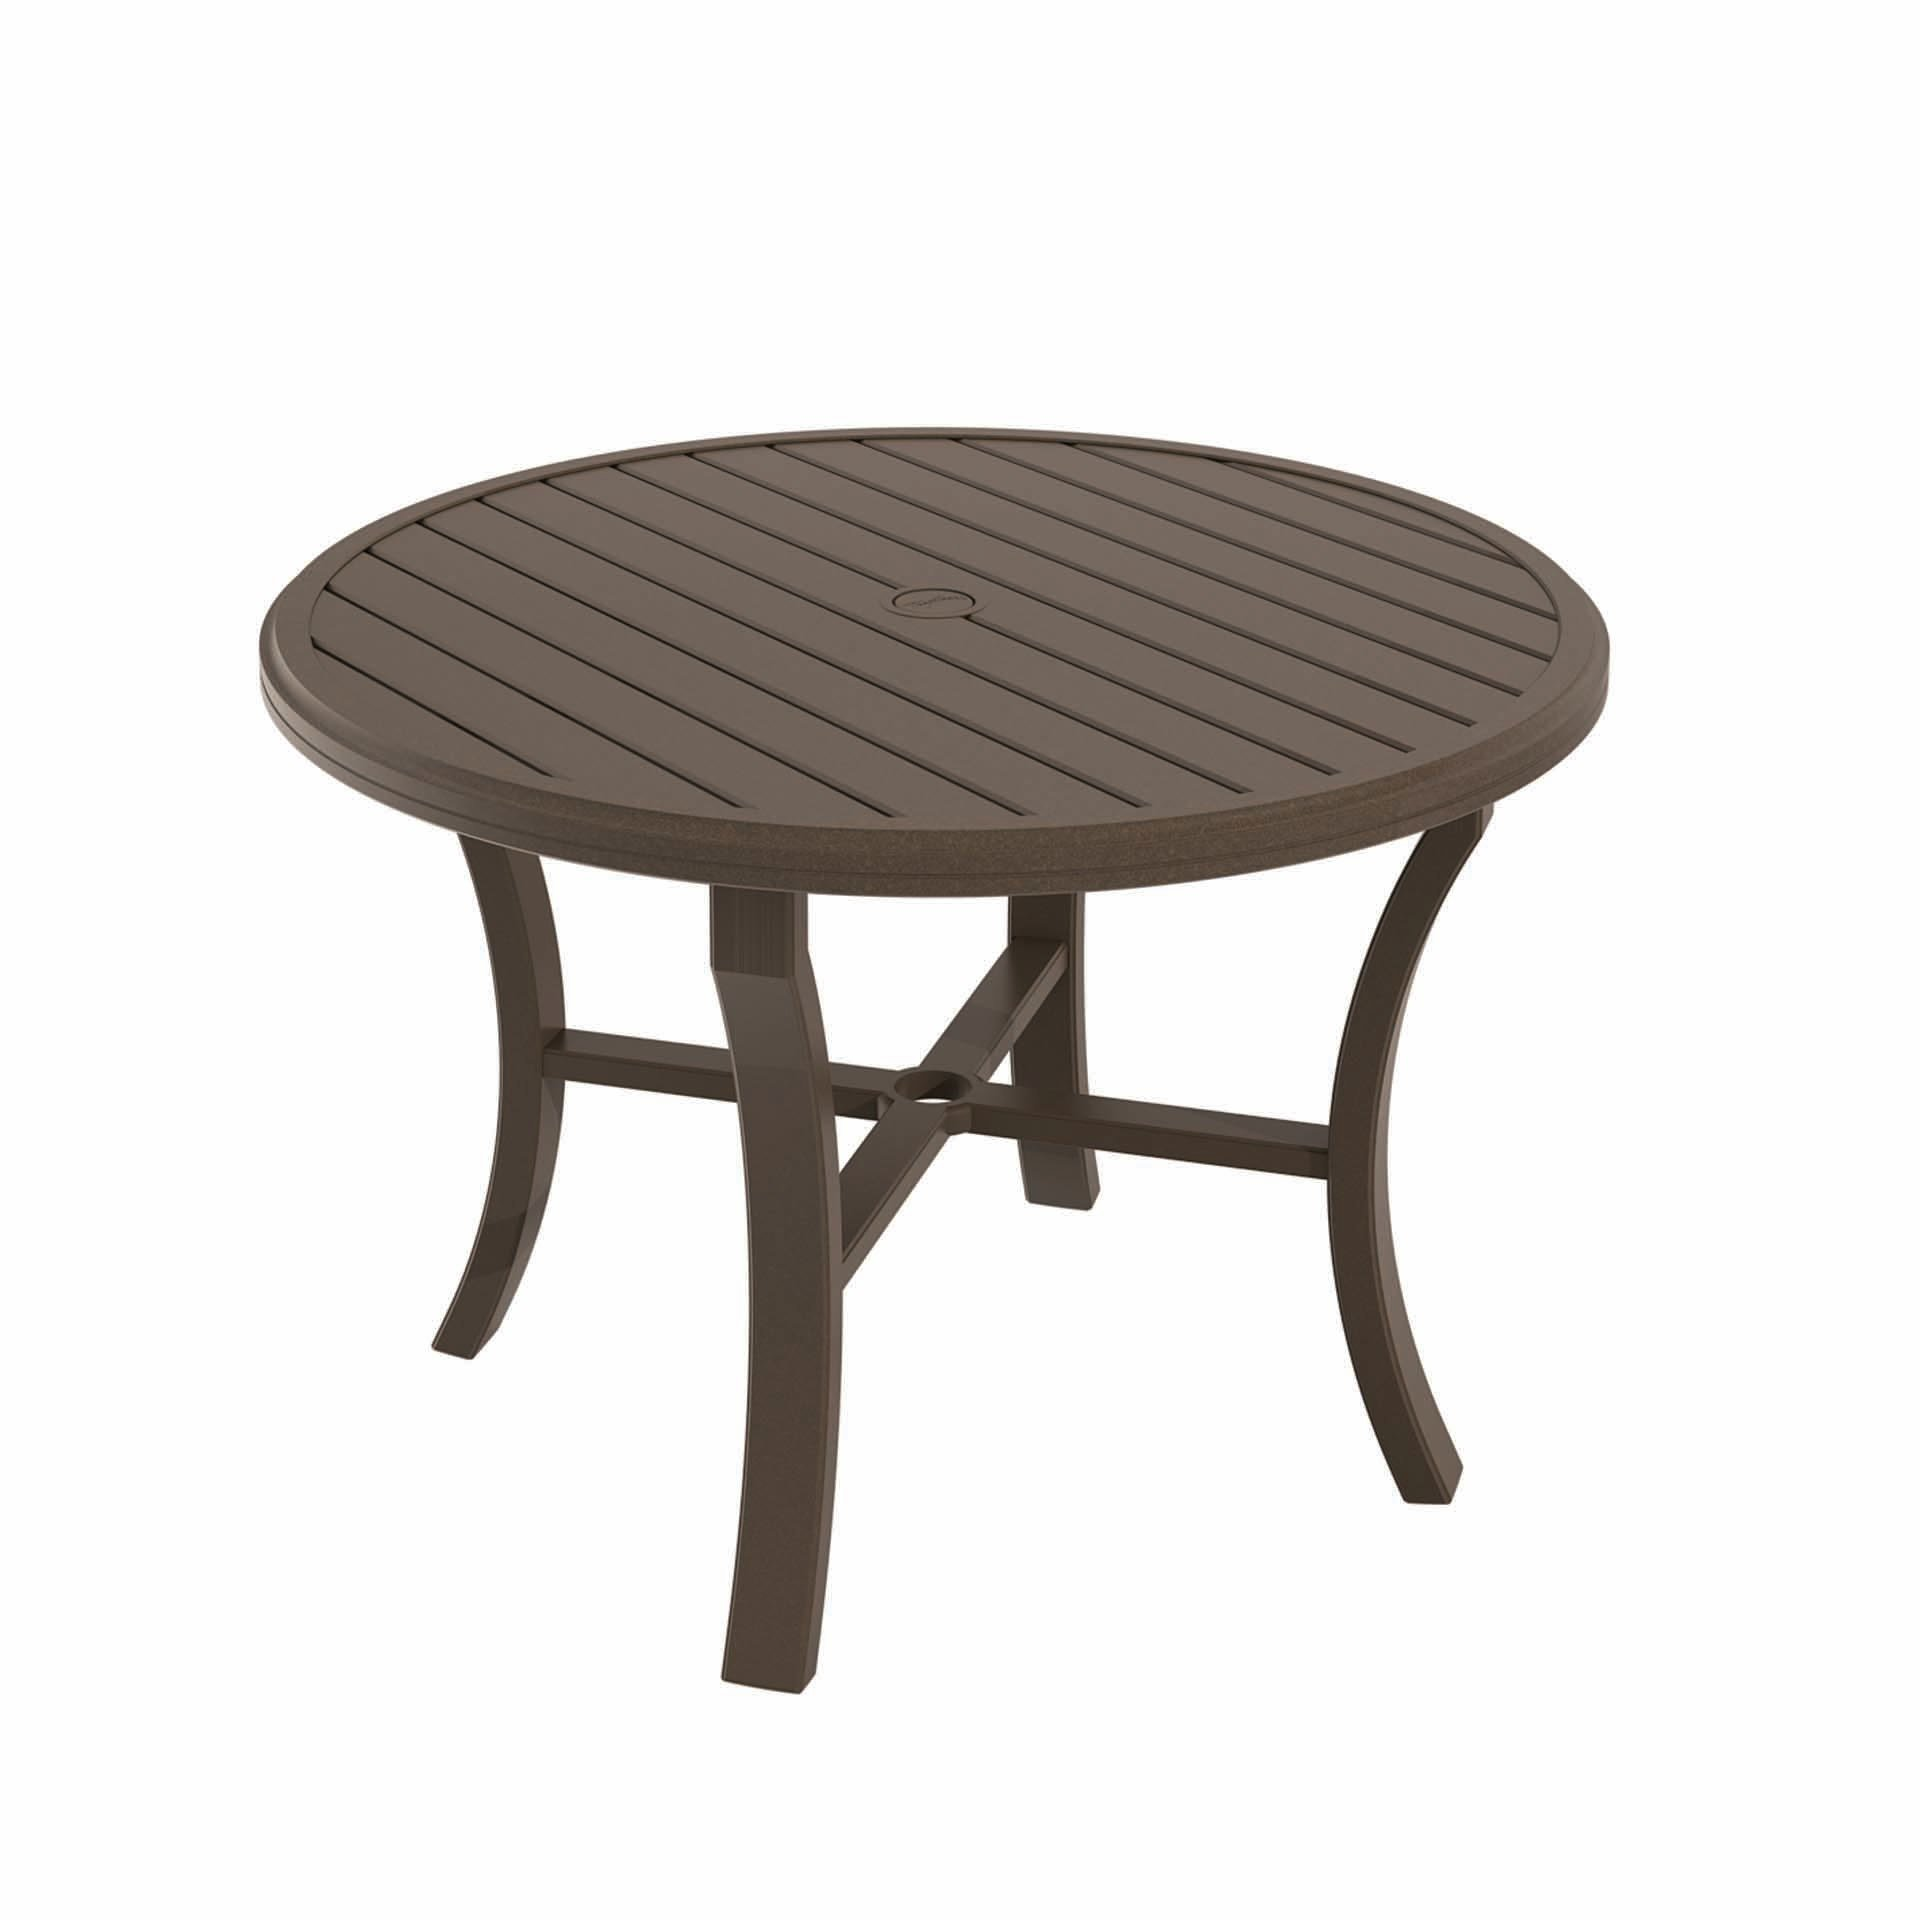 "Tropitone Banchetto 42"" Round Dining Table Leisure Living"